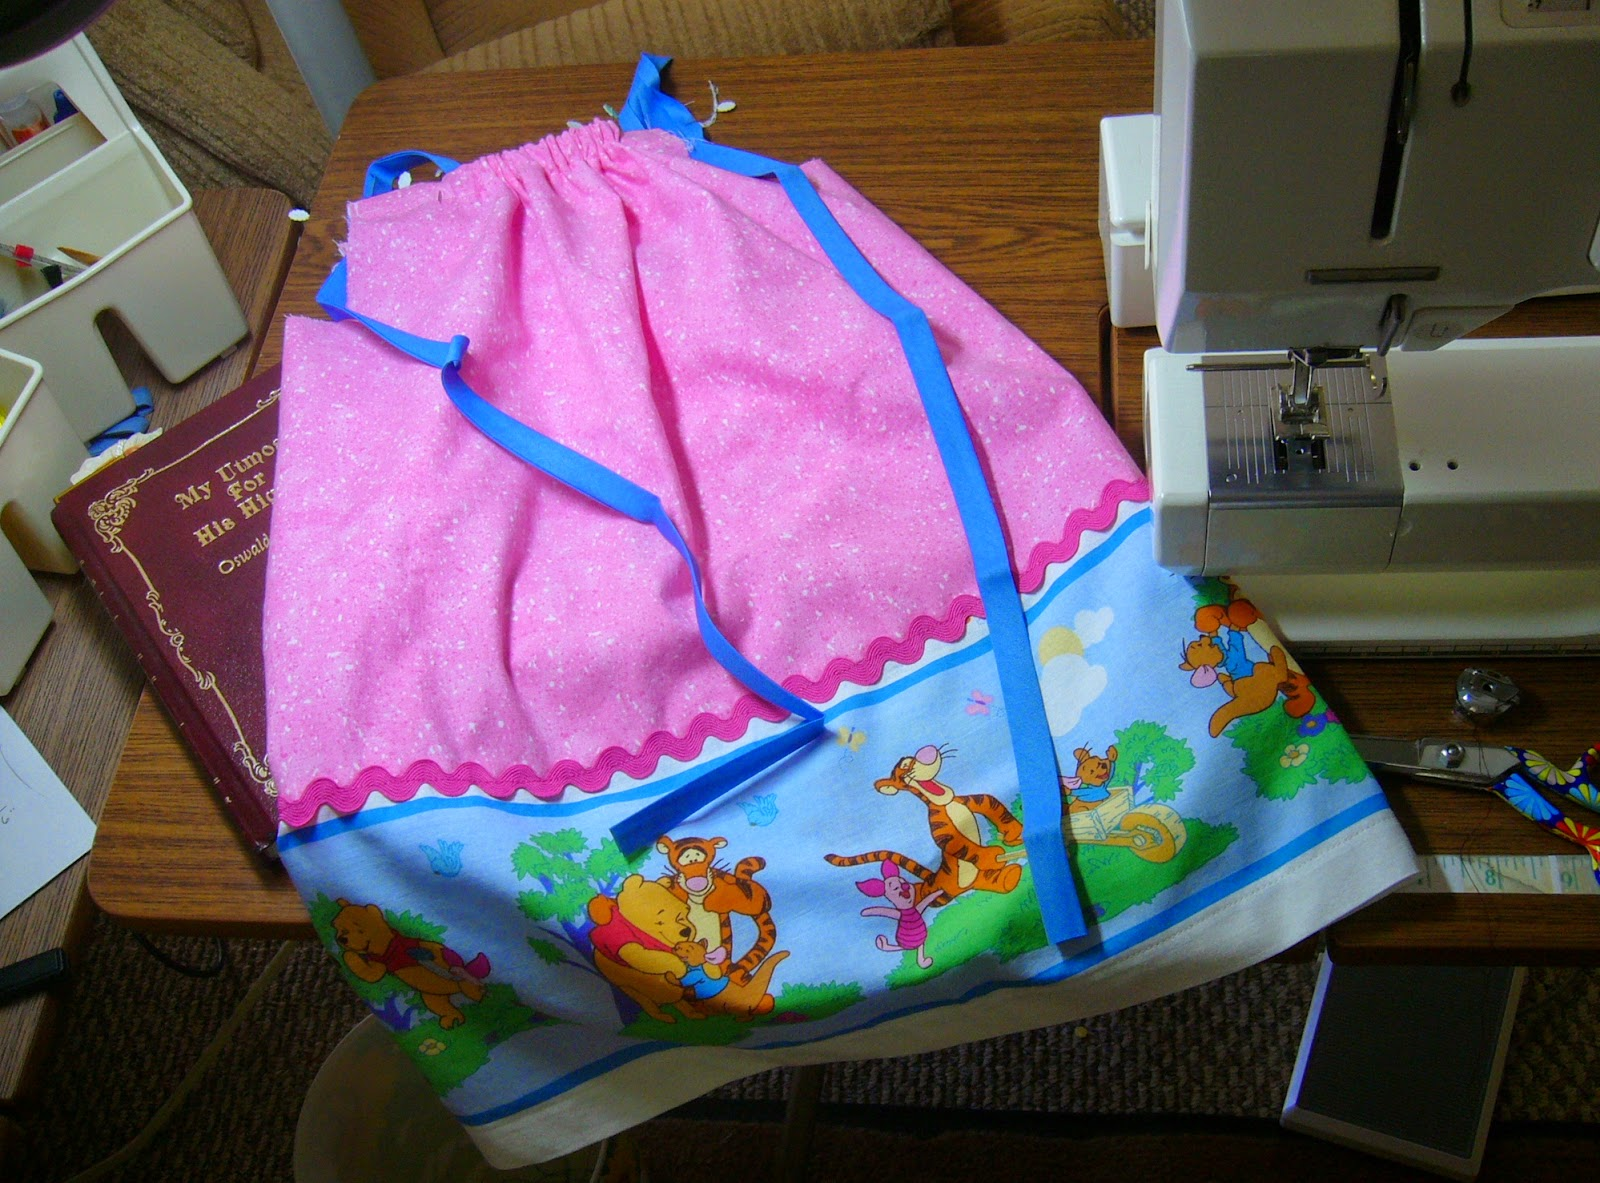 Winnie the Pooh Dress waiting to be finished for an Operation Christmas Child shoebox.